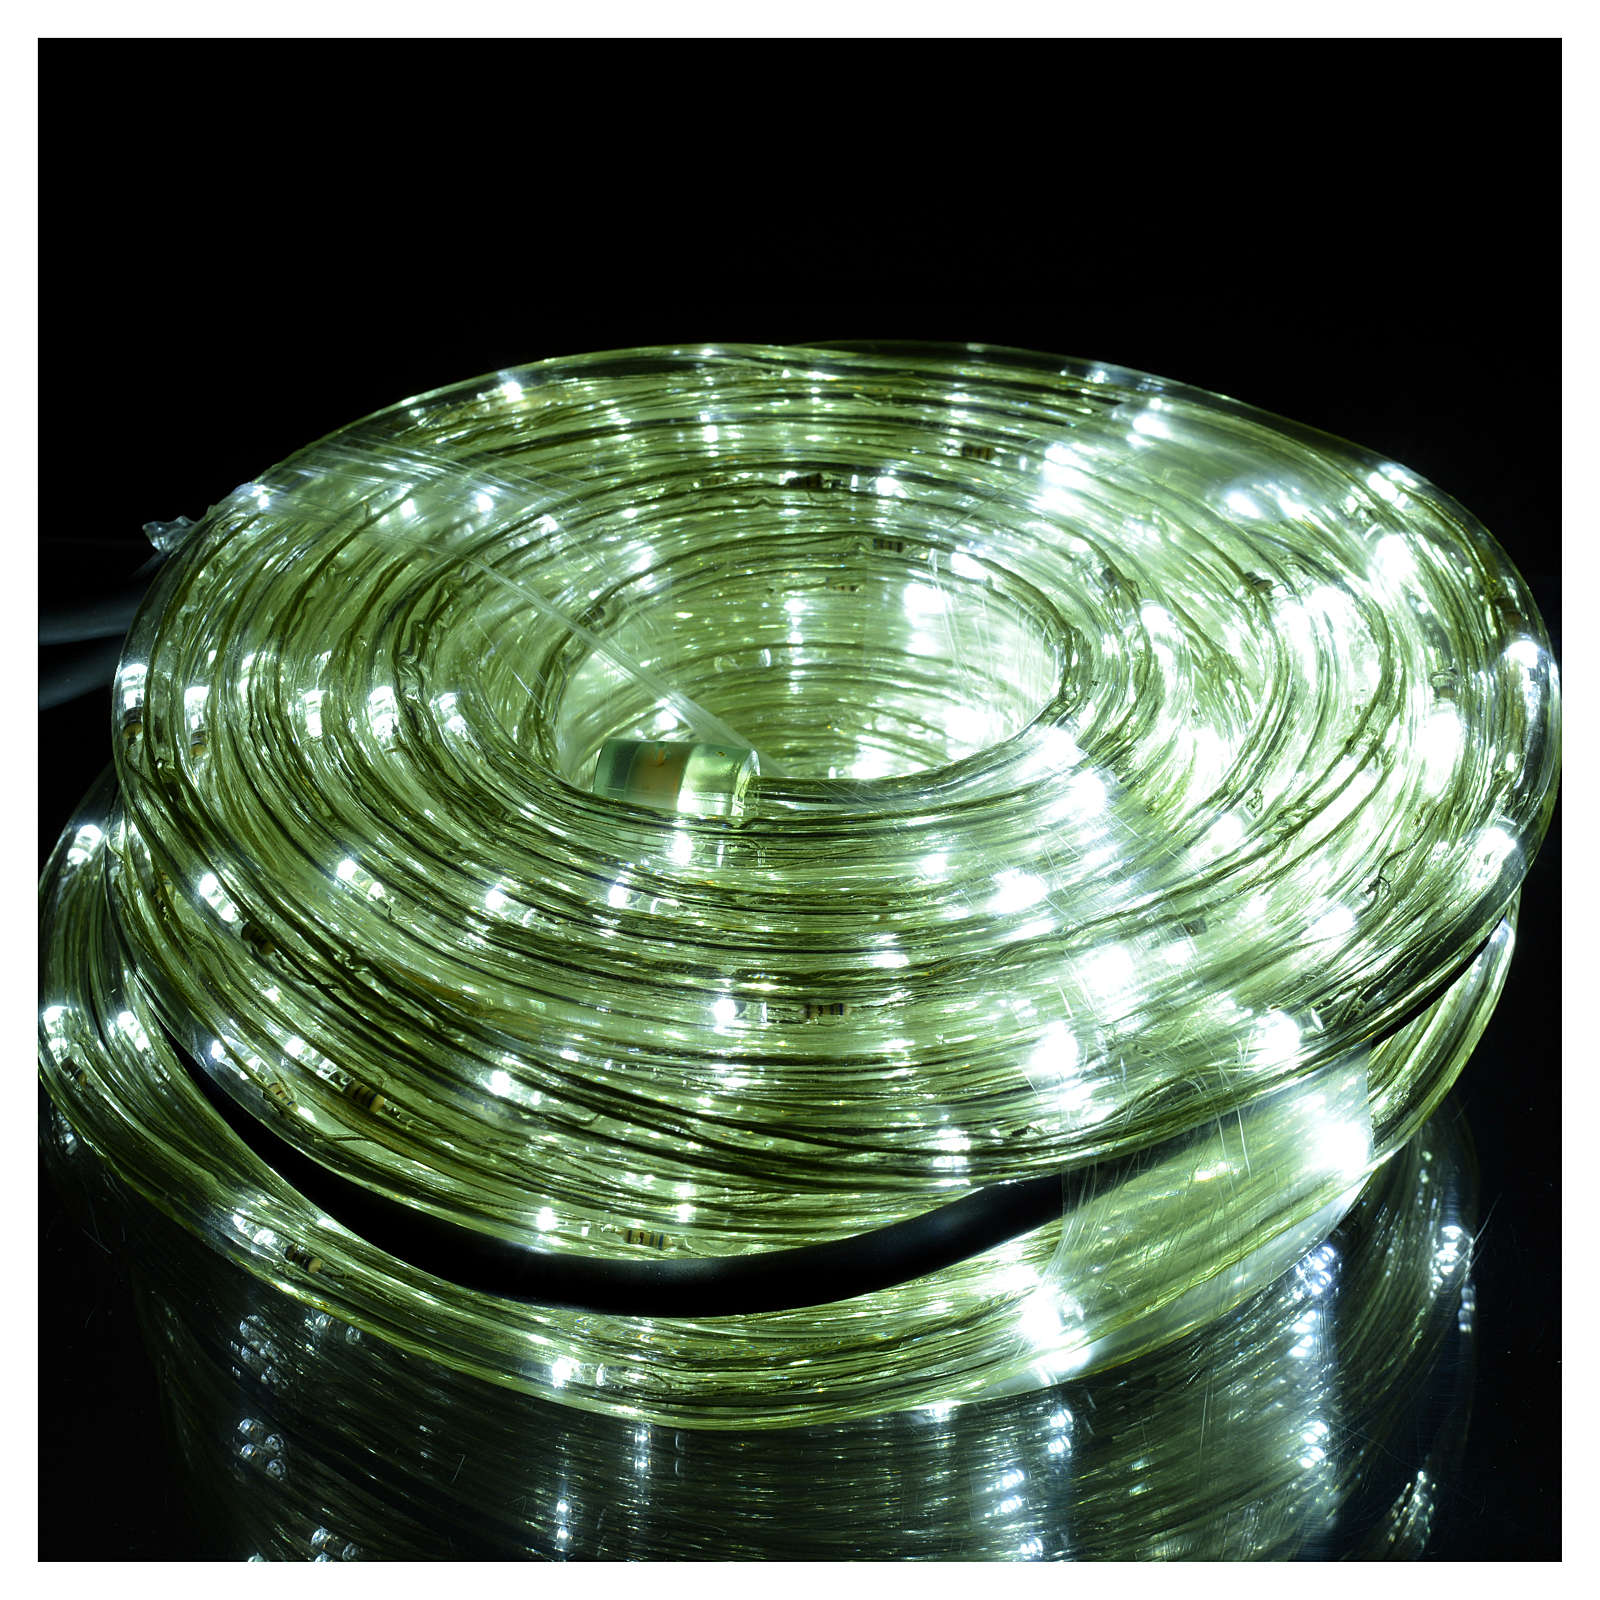 Christmas lights, tube of 15m, ice white, for indoor and outdoor use, programmable 3